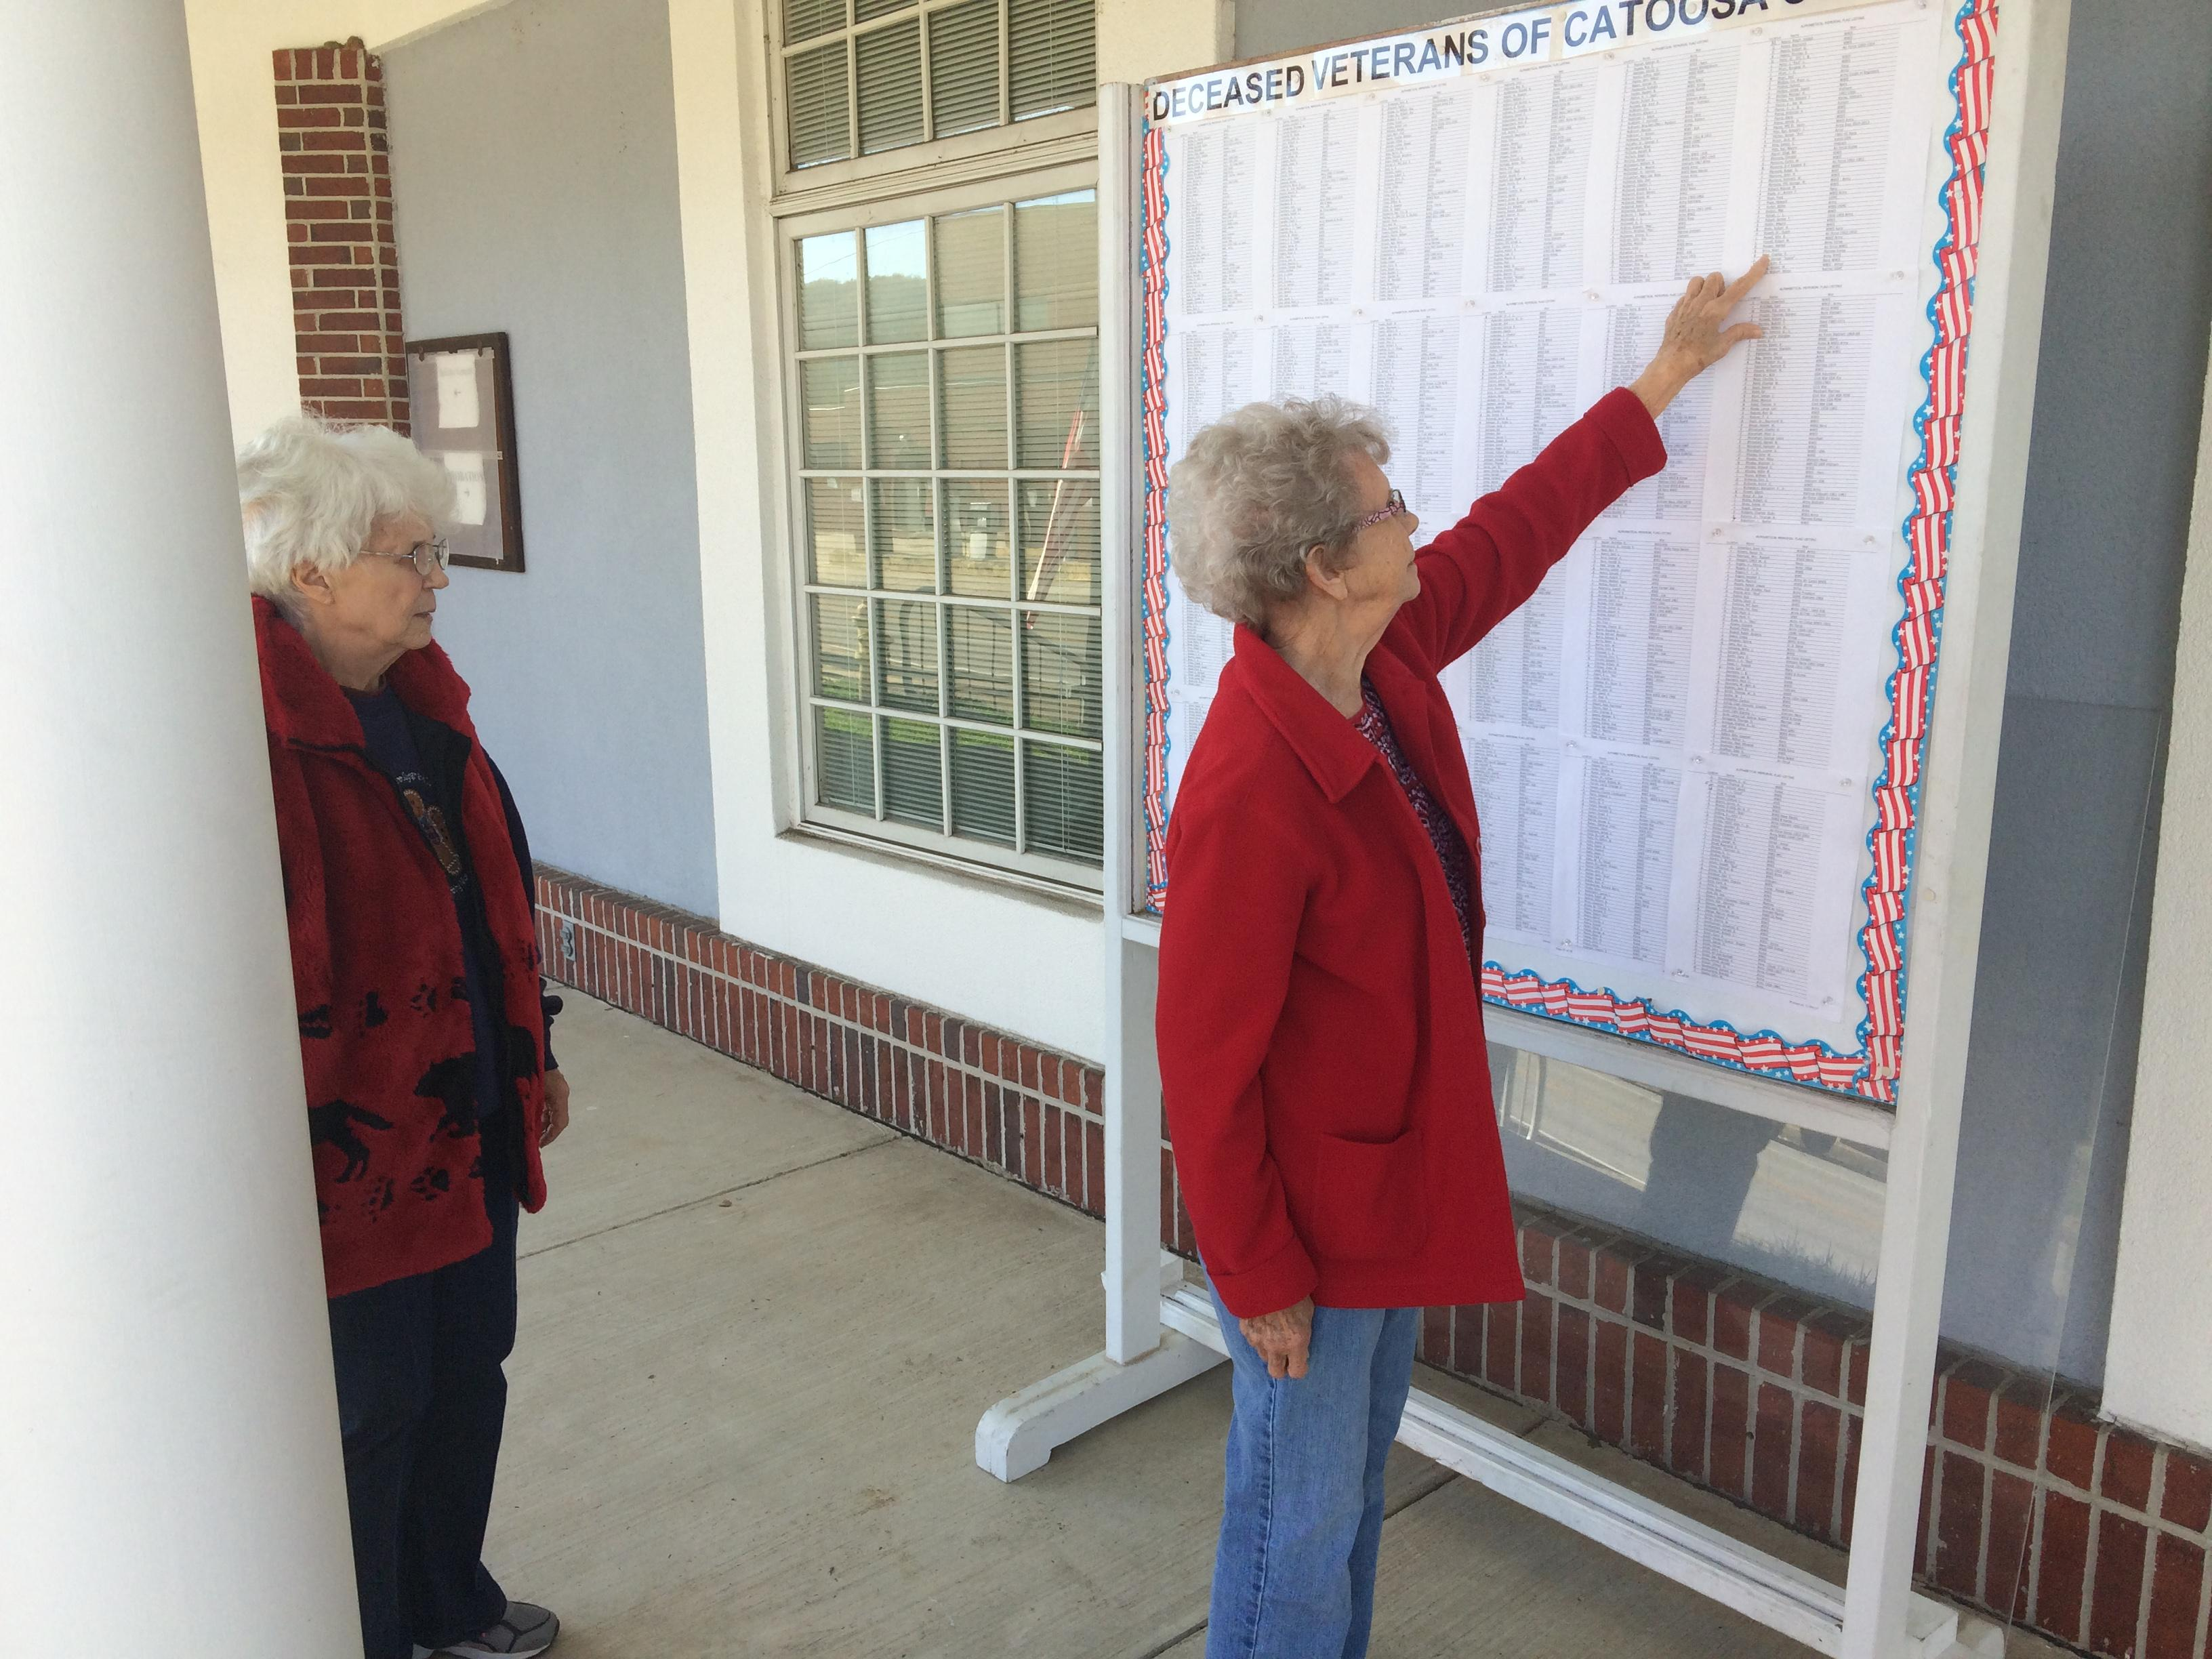 Elberta Cline and Marie Wright search for names of fallen veterans they know. (Image: WTVC)<p></p>